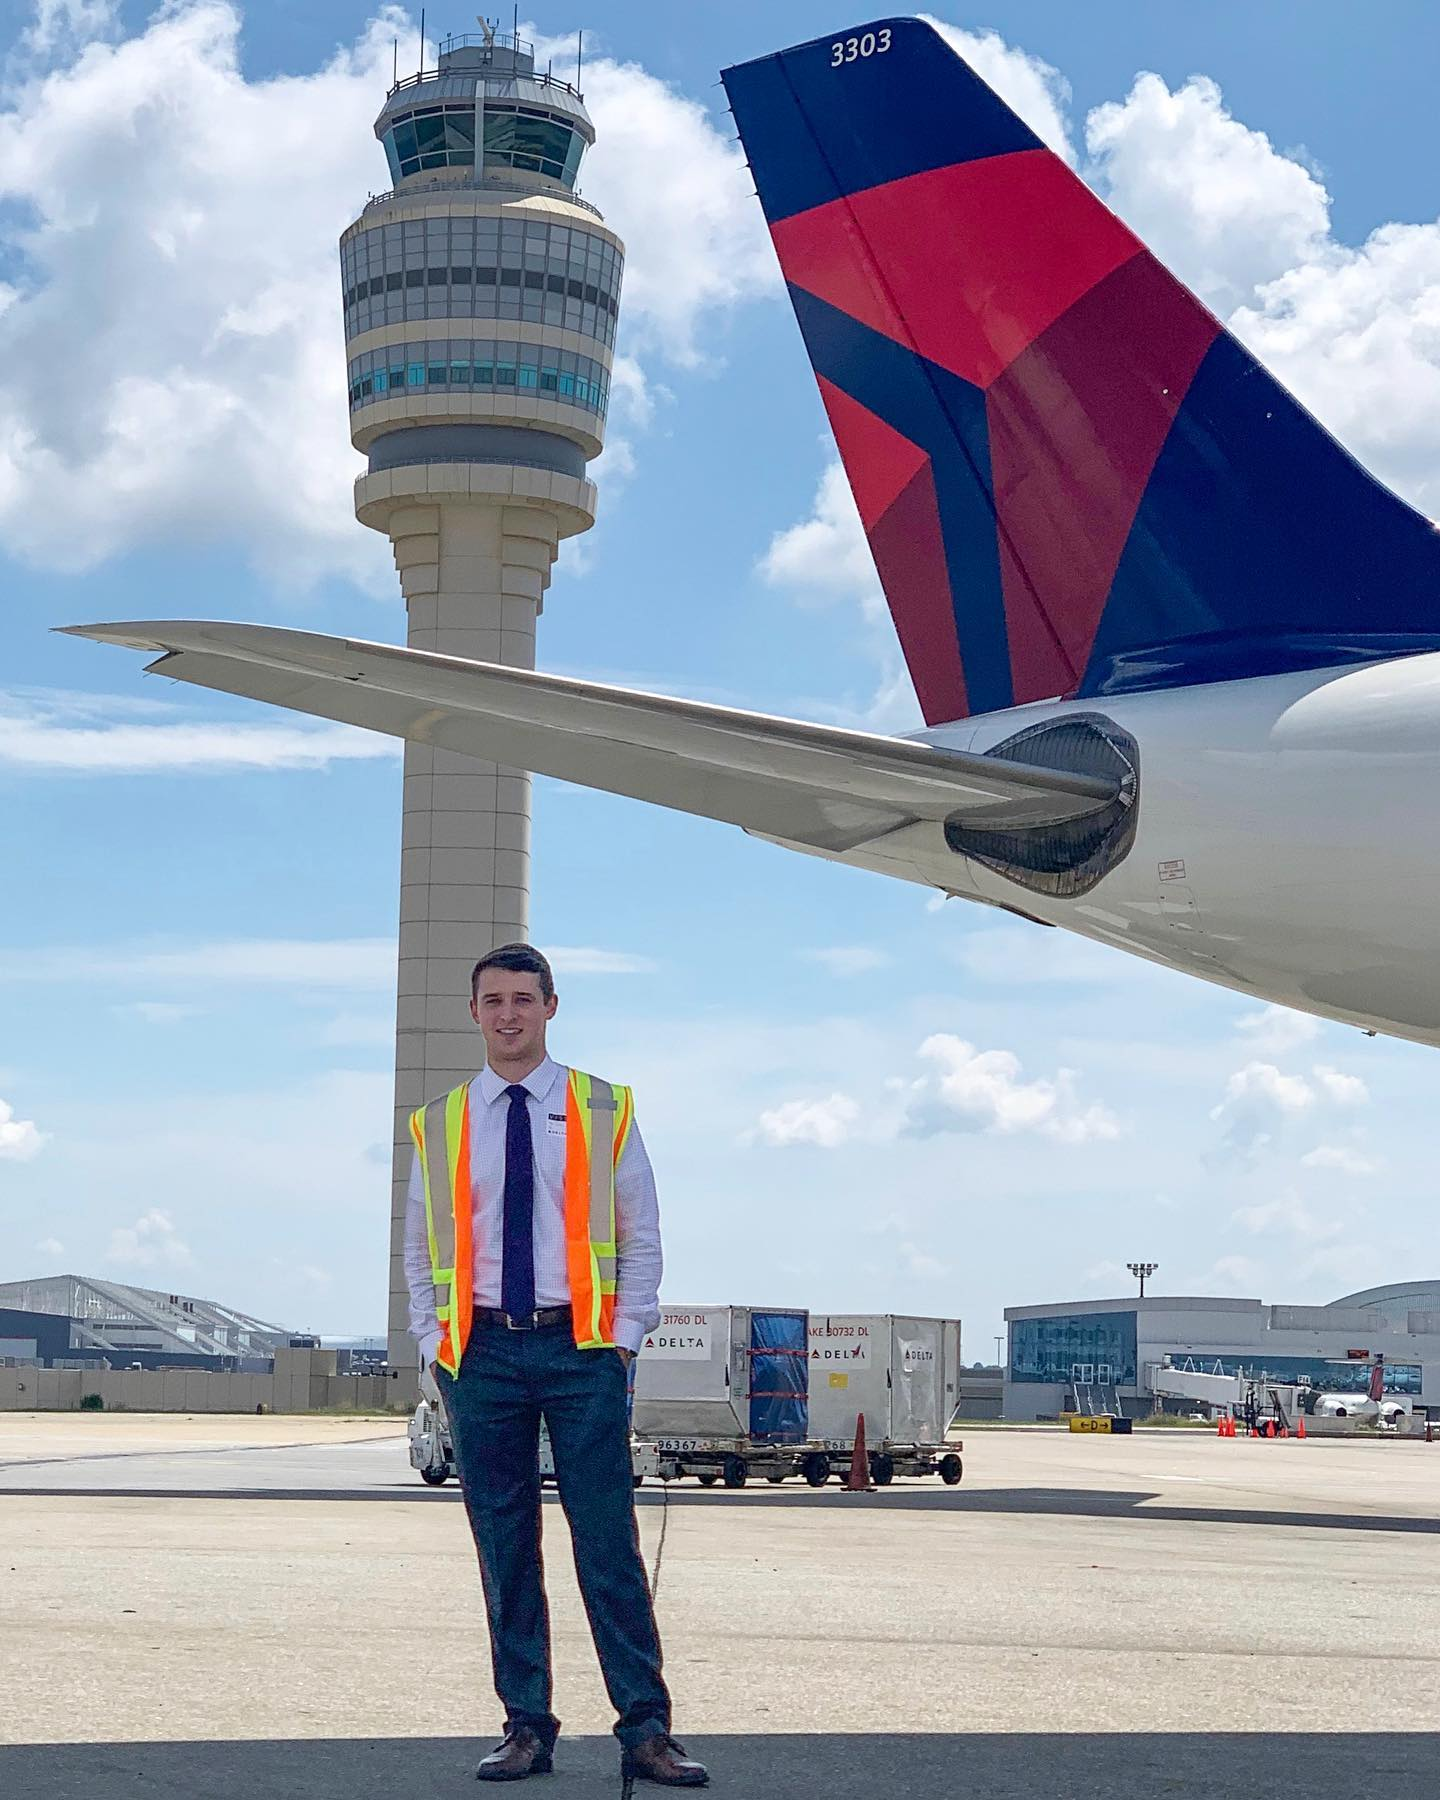 Jared Austin Thomas,<br>Graduated with a Bachelor of Science Degree in Professional Flight Management from Auburn University